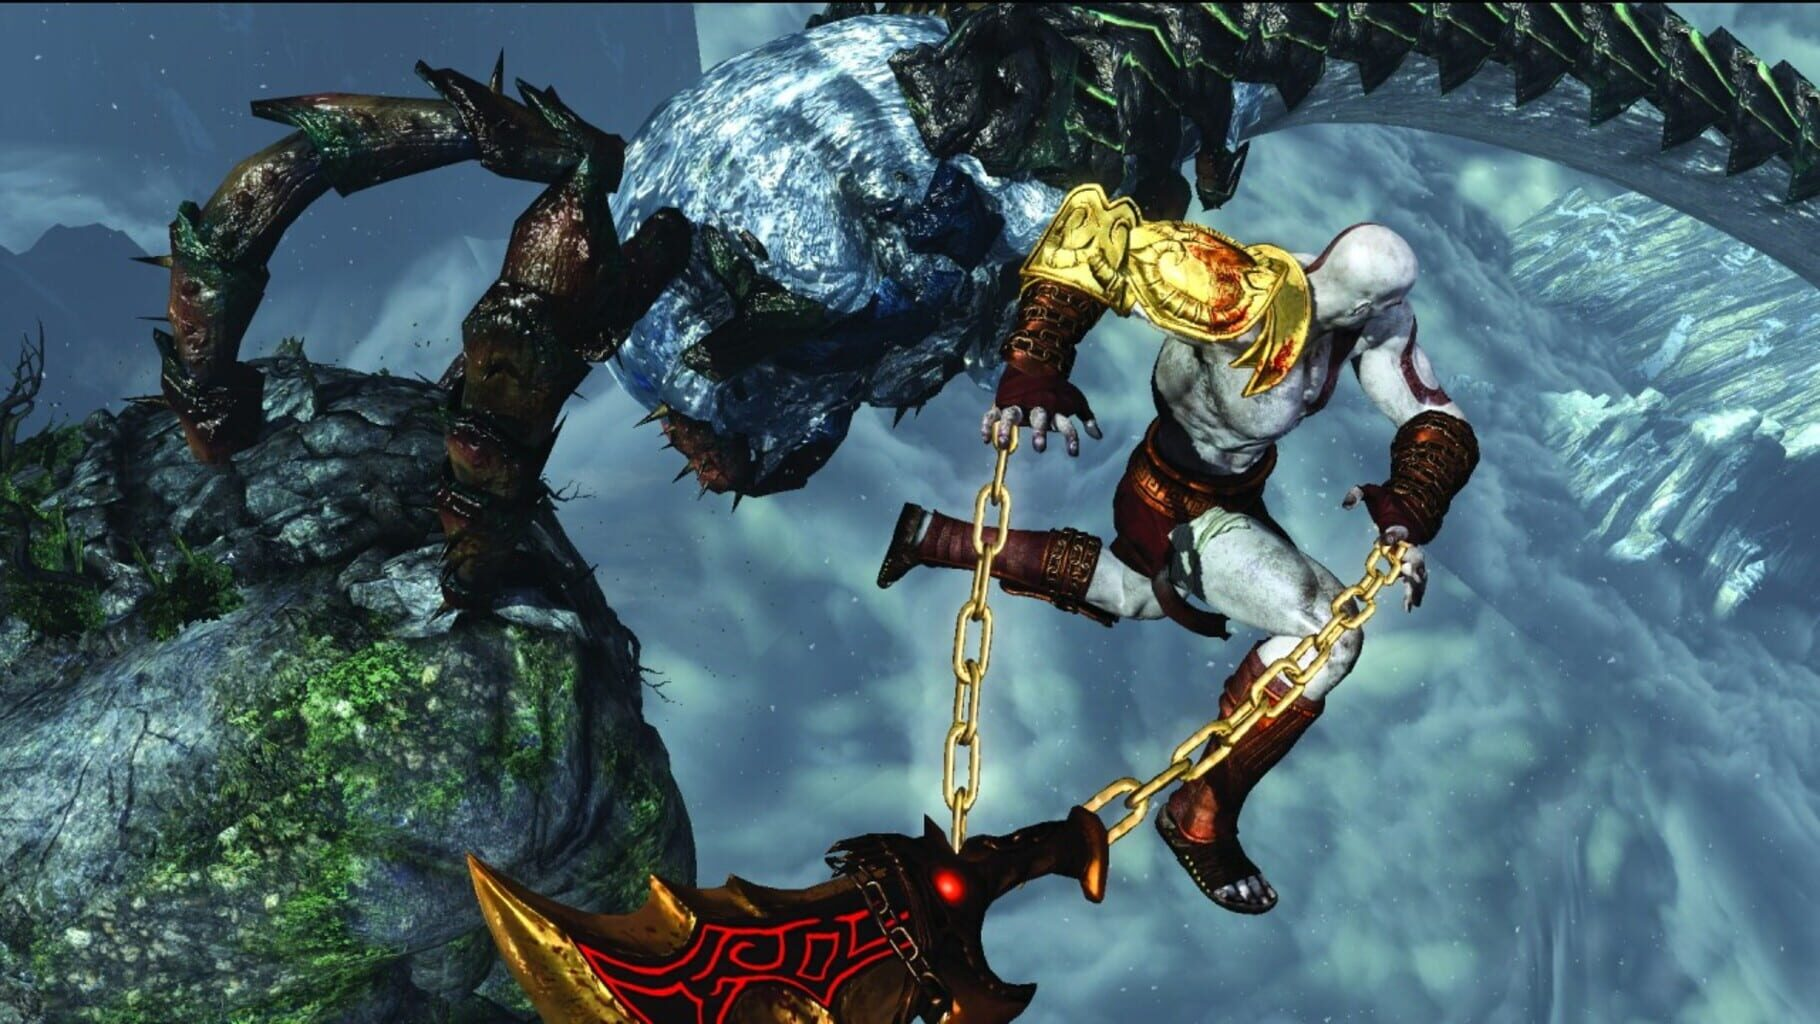 Gameplay Screenshot from God of War III